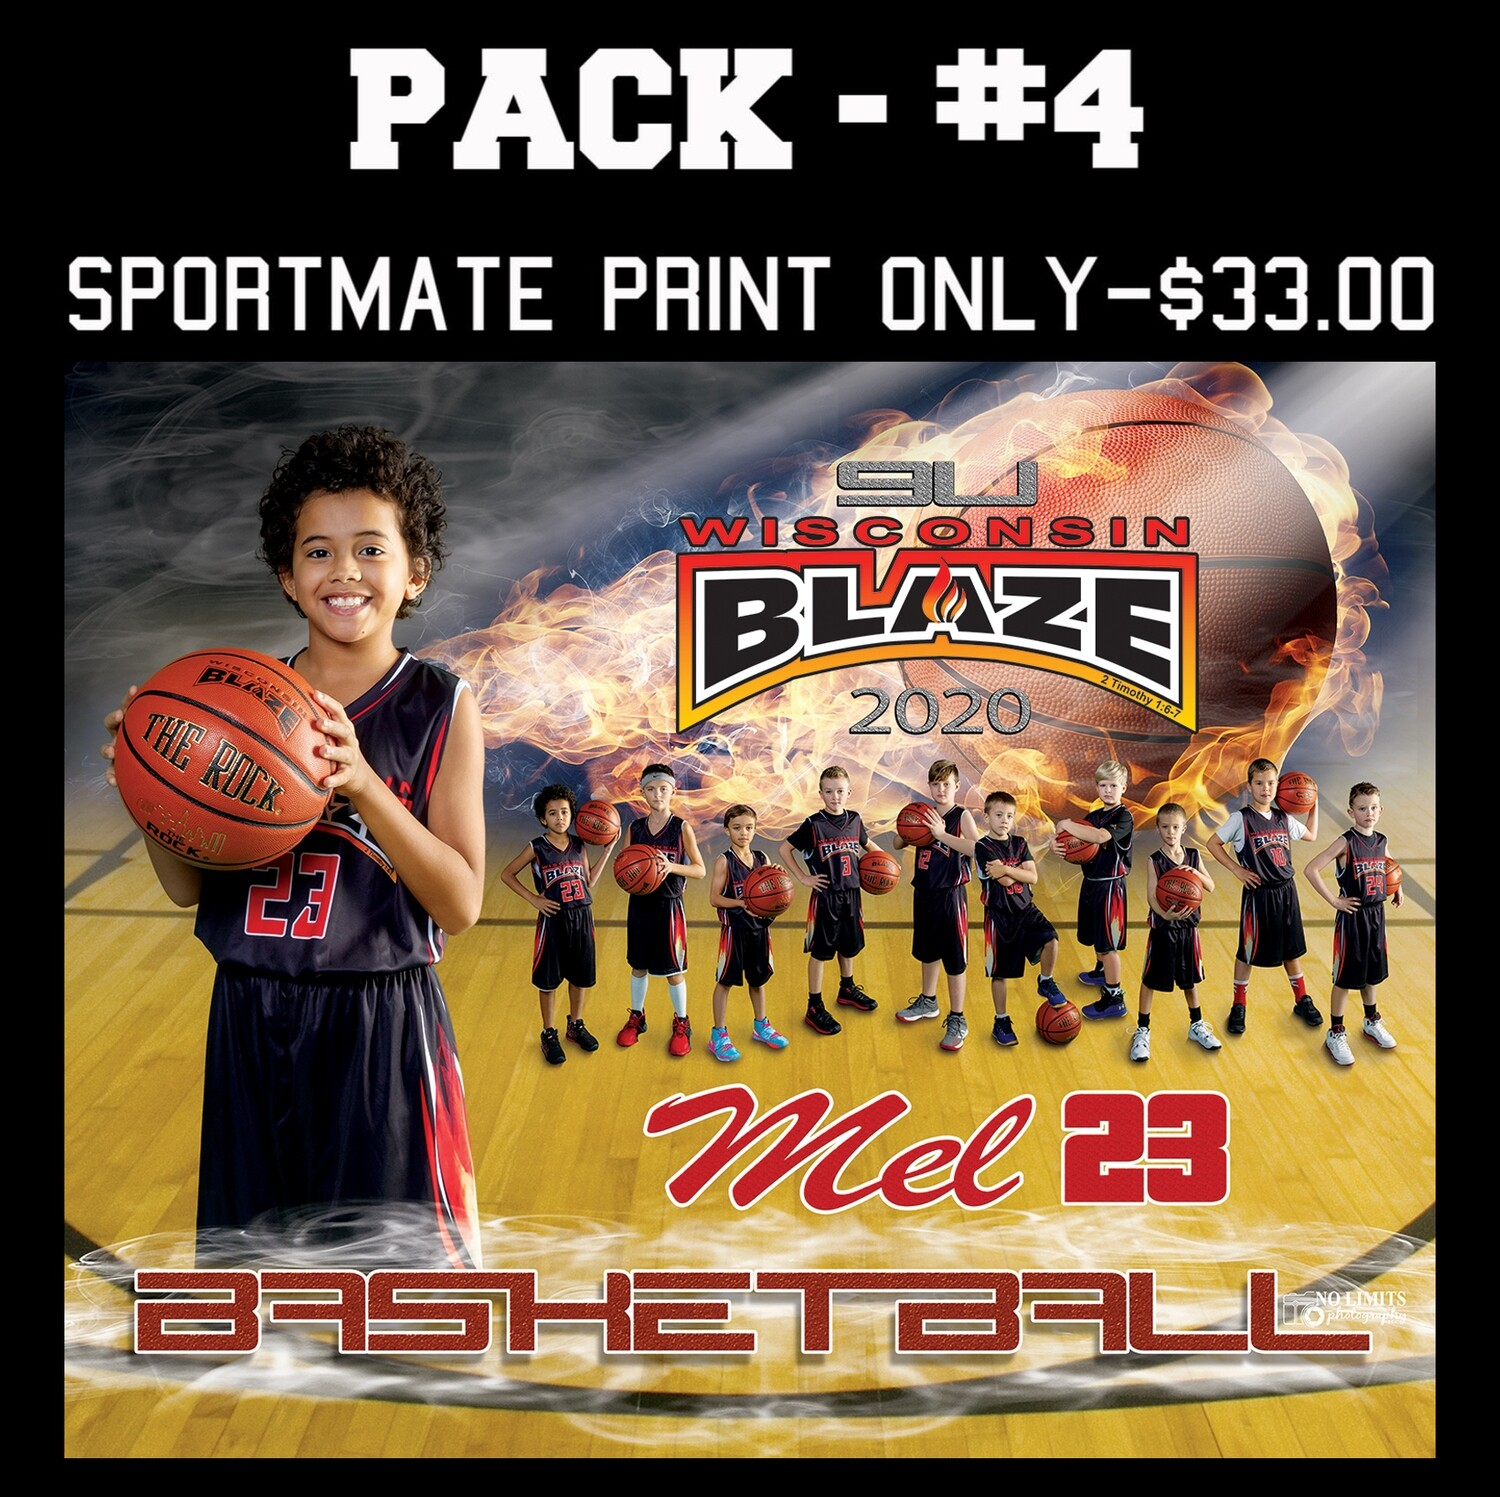 PACK #4 - 8X10 Sportmate Photo Print Only